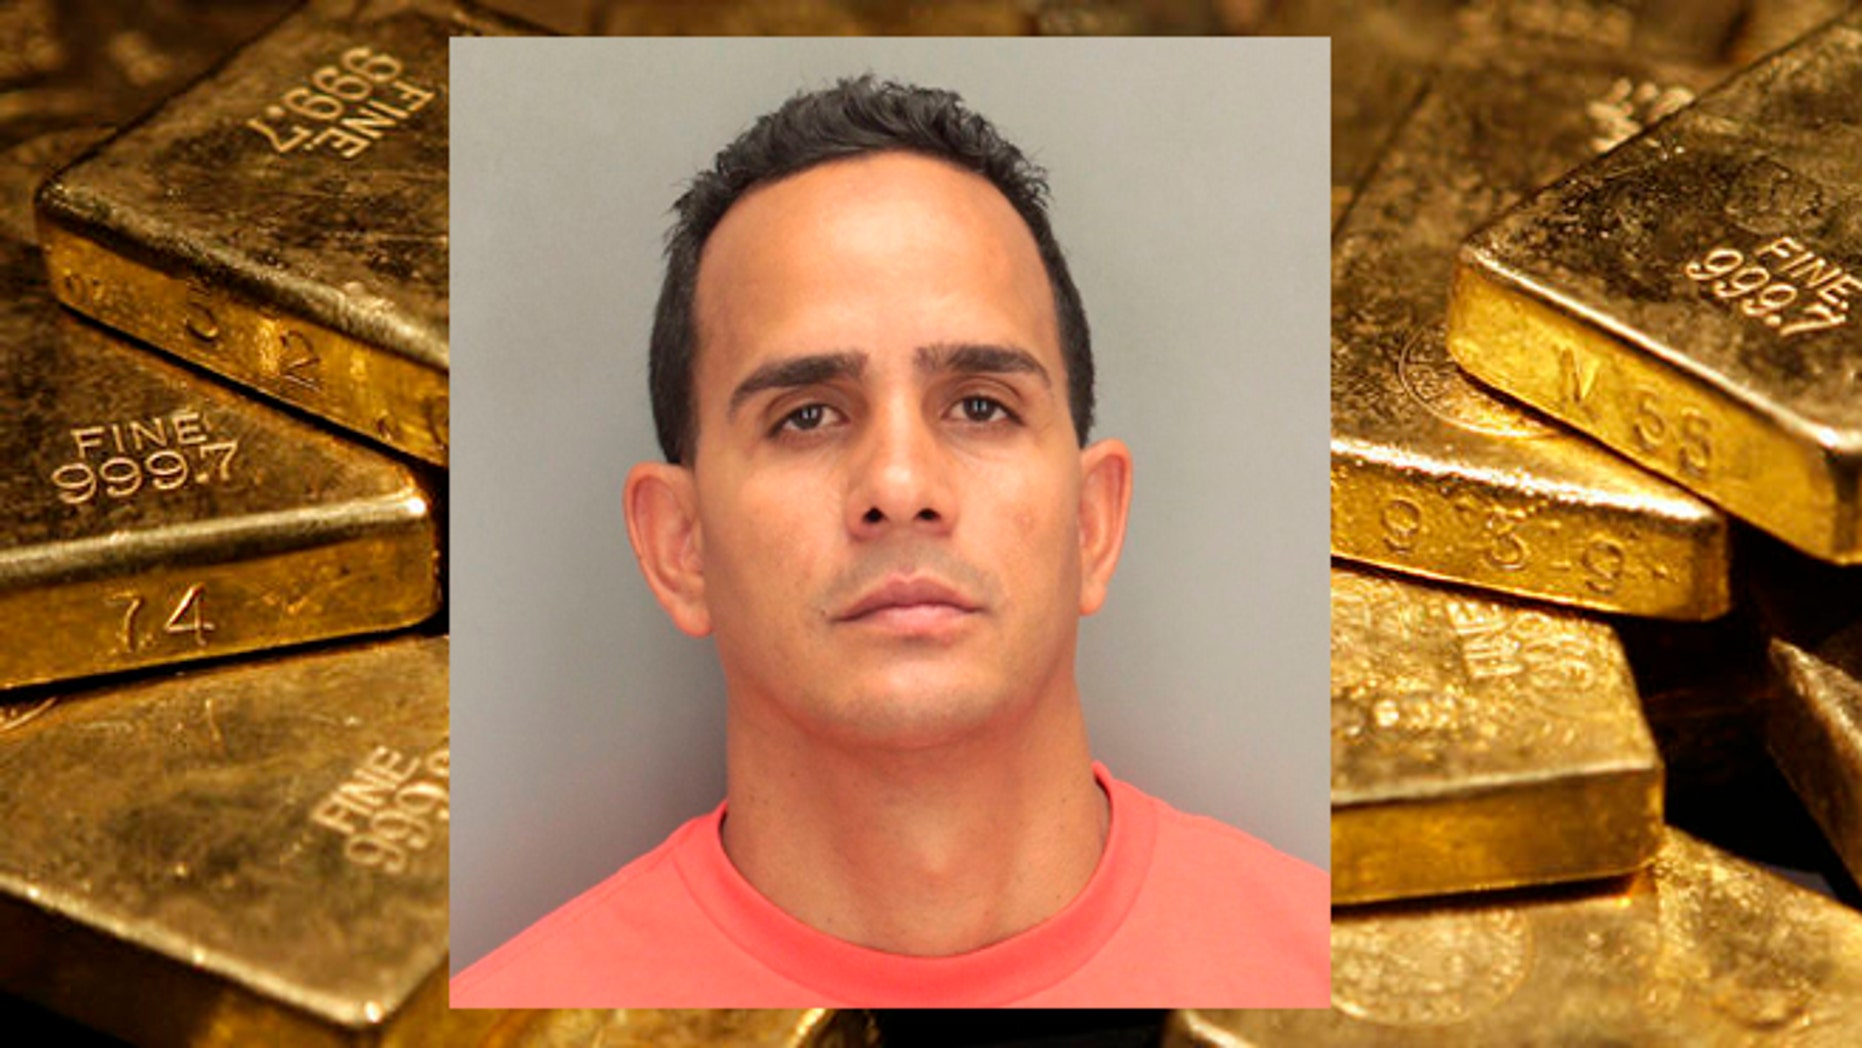 Raonel Valdez skipped bail in Miami following a $2.8 million gold heist and is now believed to be either in the Bahamas or somewhere in South Florida. (AP Photo/Seth Wenig, File)